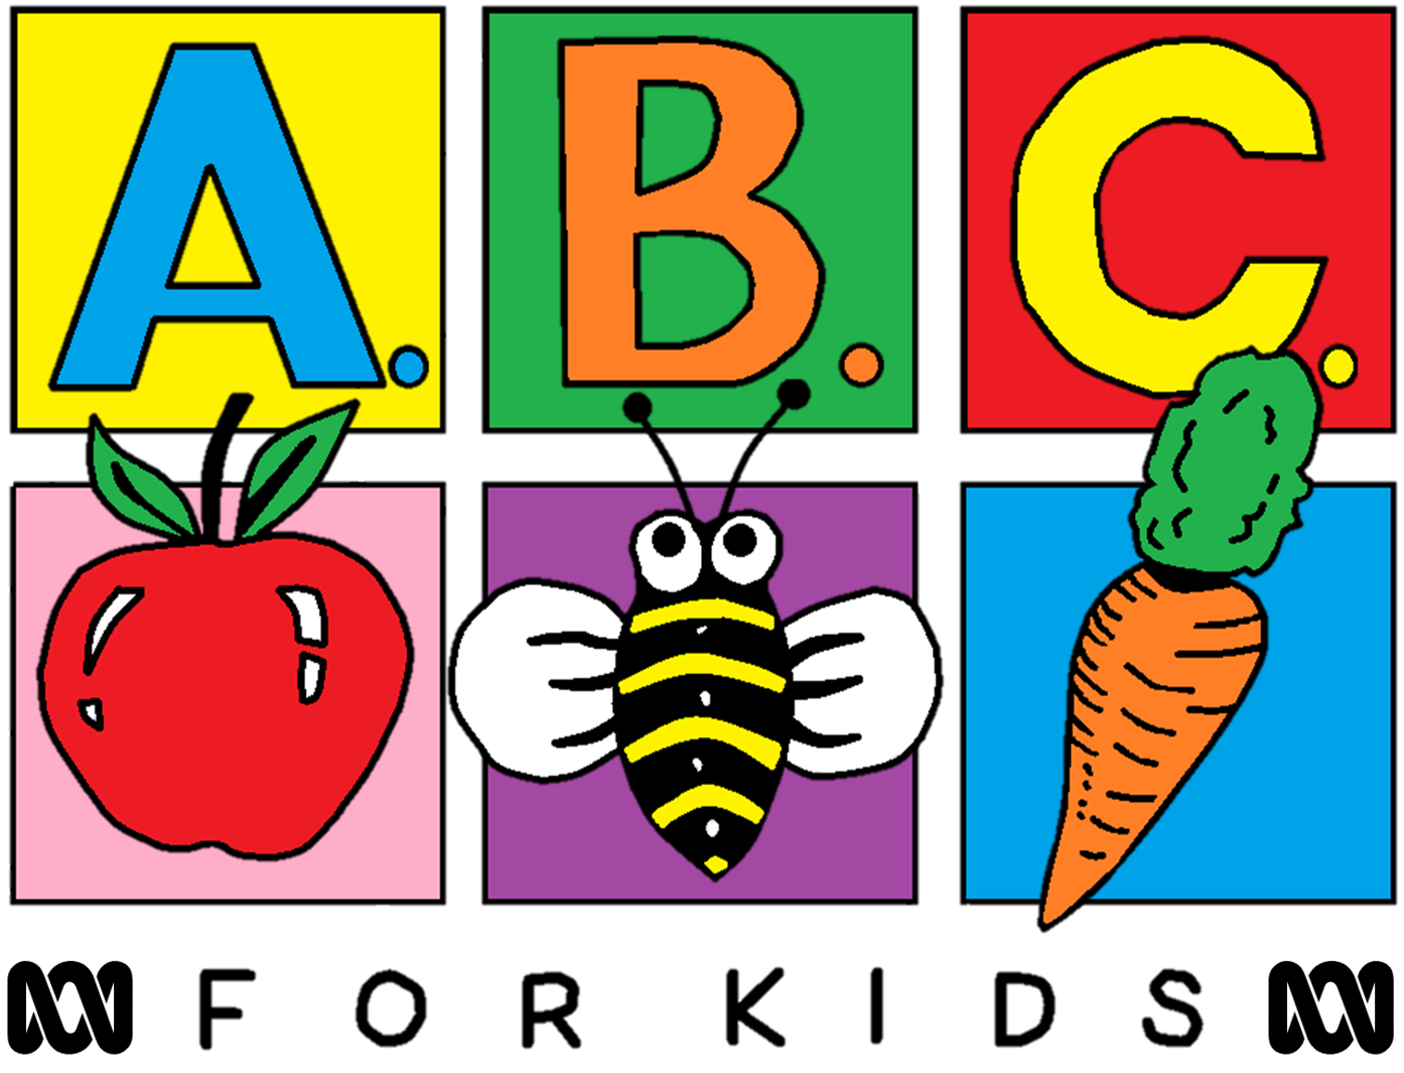 ABC Kids Was Created In 1989 As For The Logo Featured Six Blocks 3 Across 2 Down With Top Row Lettered A B And C Bottom